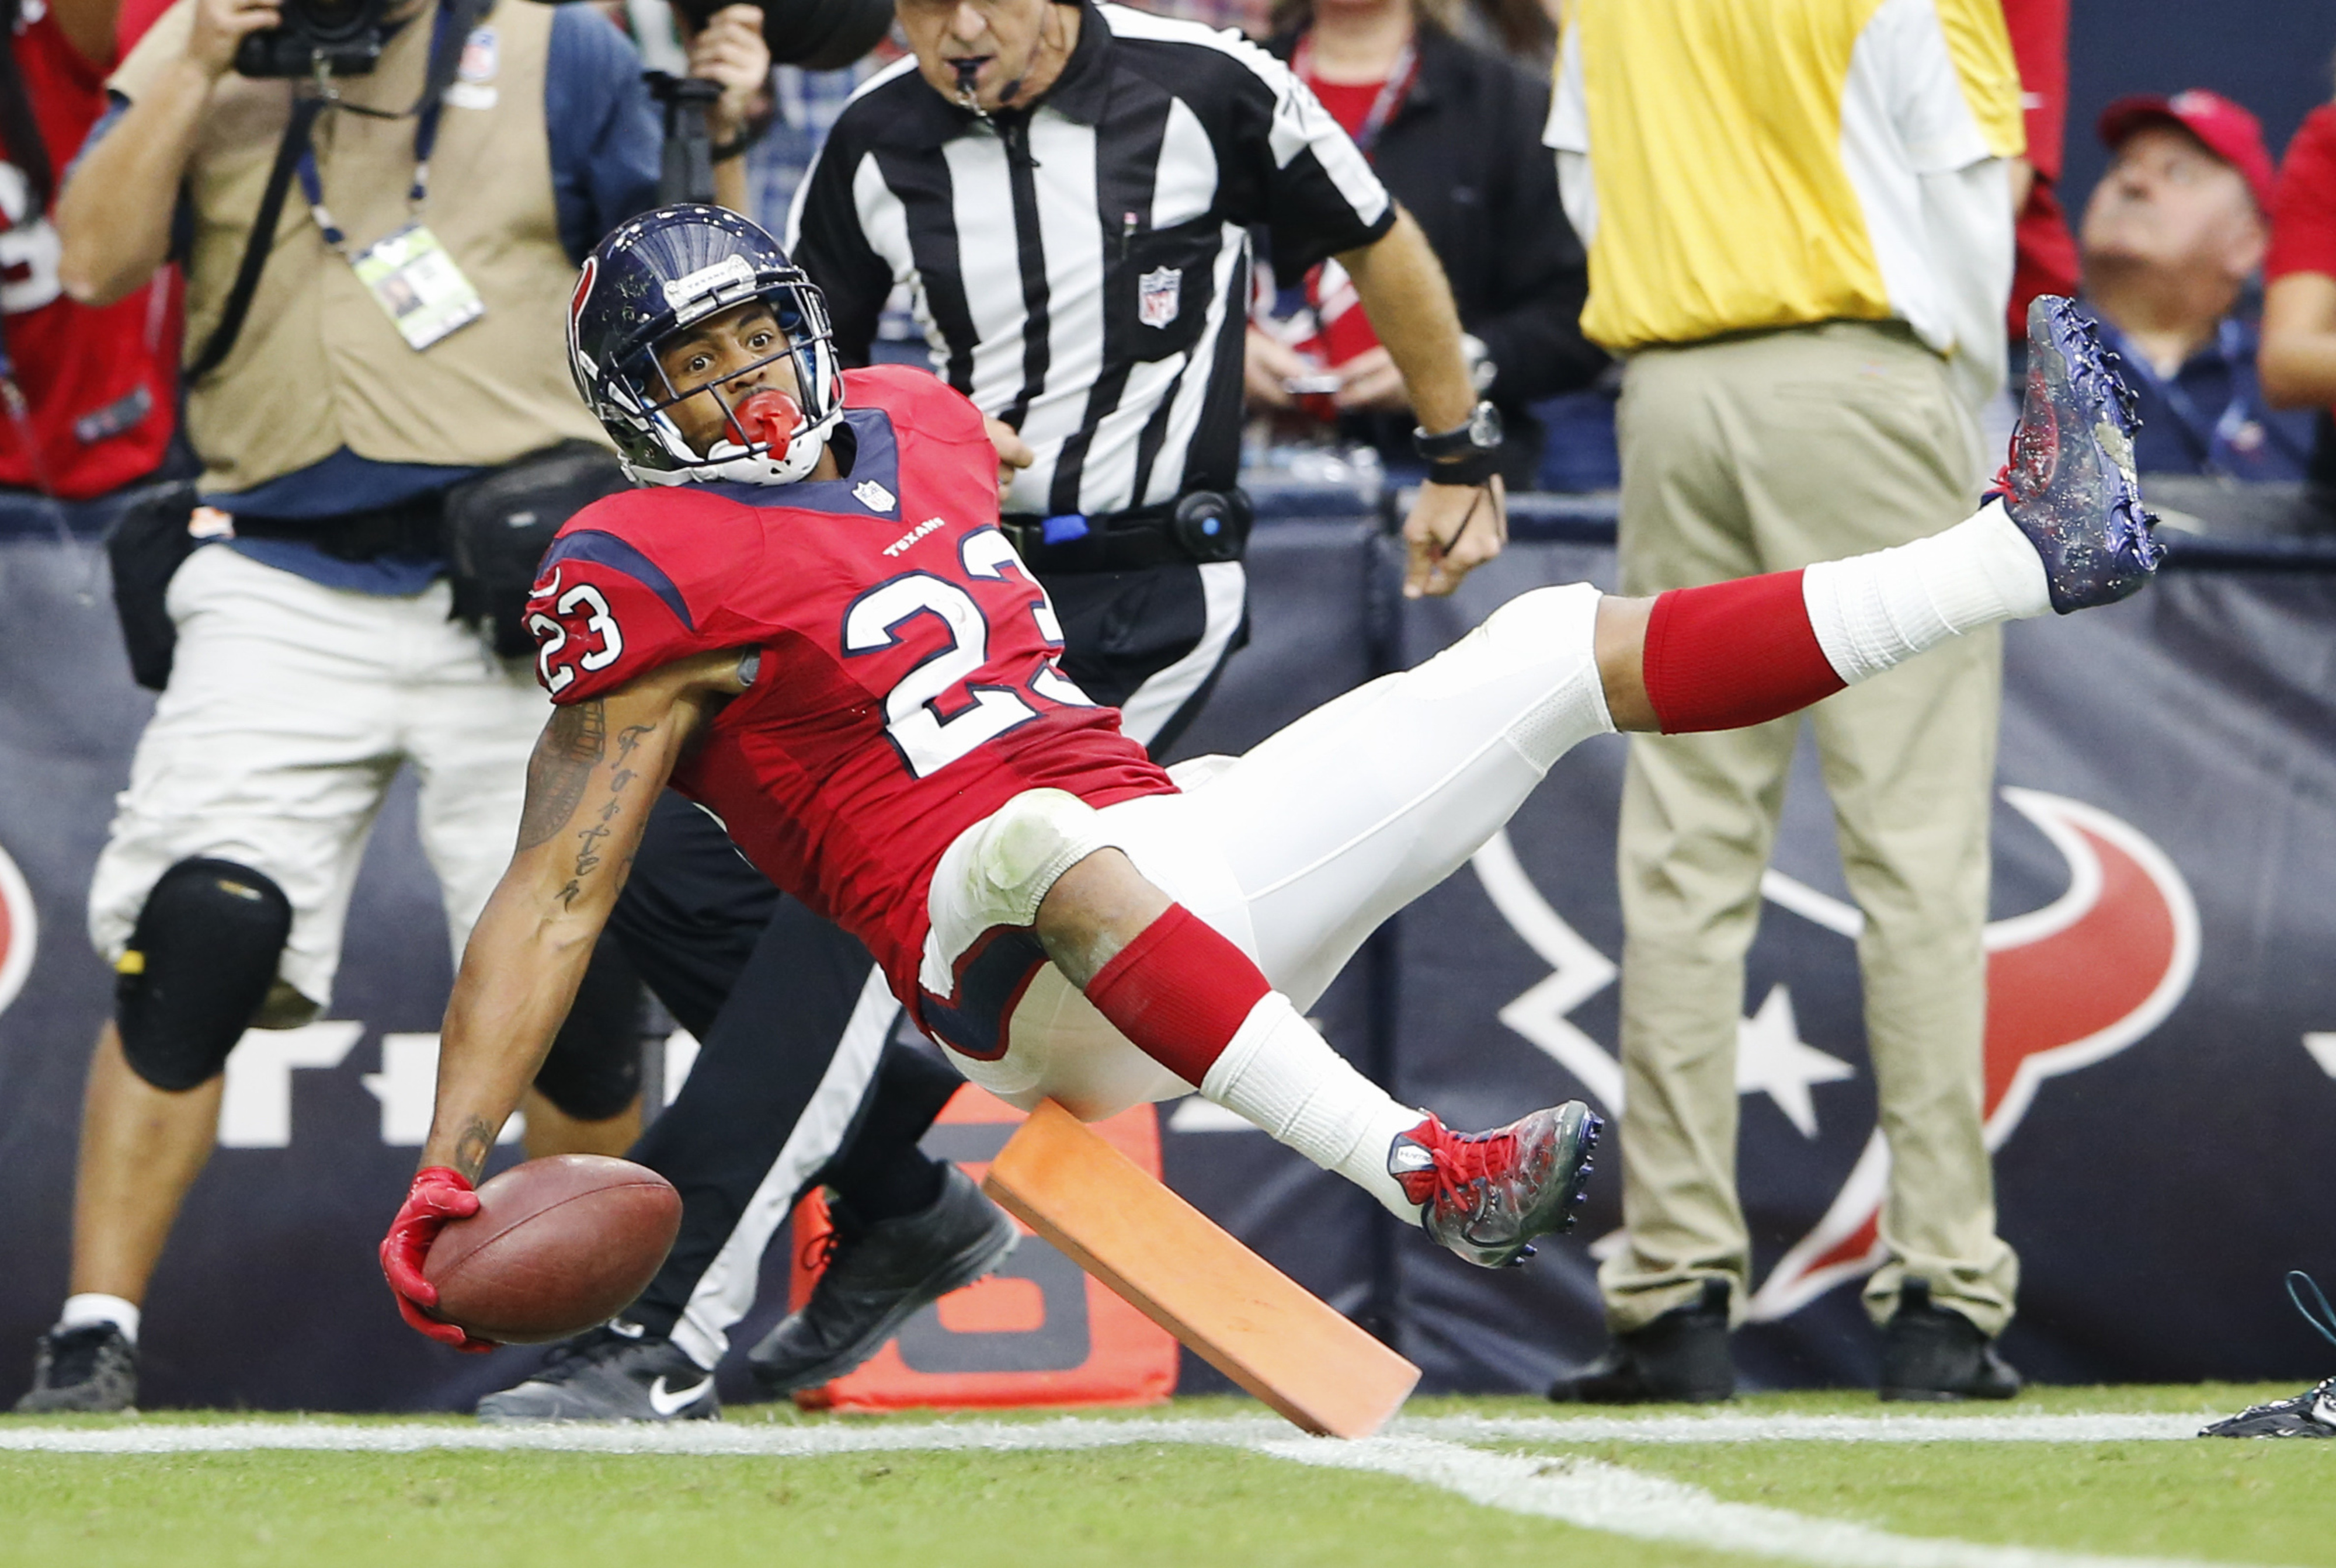 Arian's surely a major source of your optimism if you see things going well for the Texans in the second half.